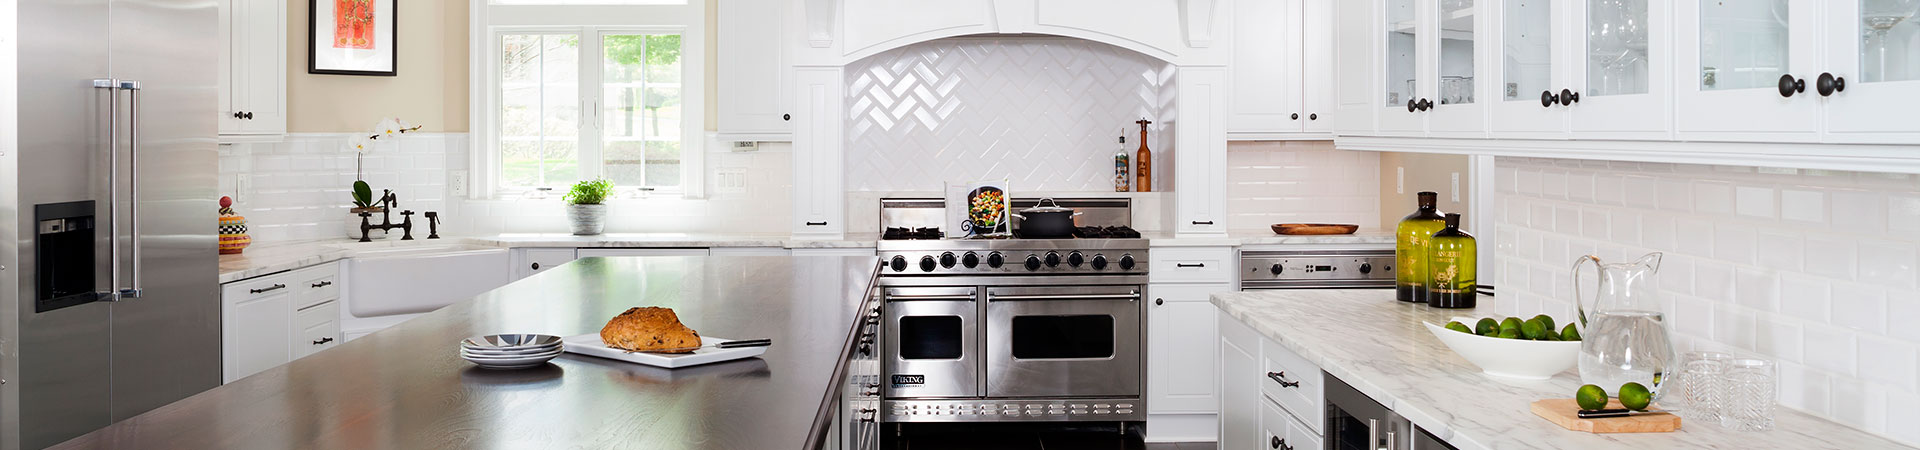 Kitchen remodeling in Washington DC, MD, Northern VA